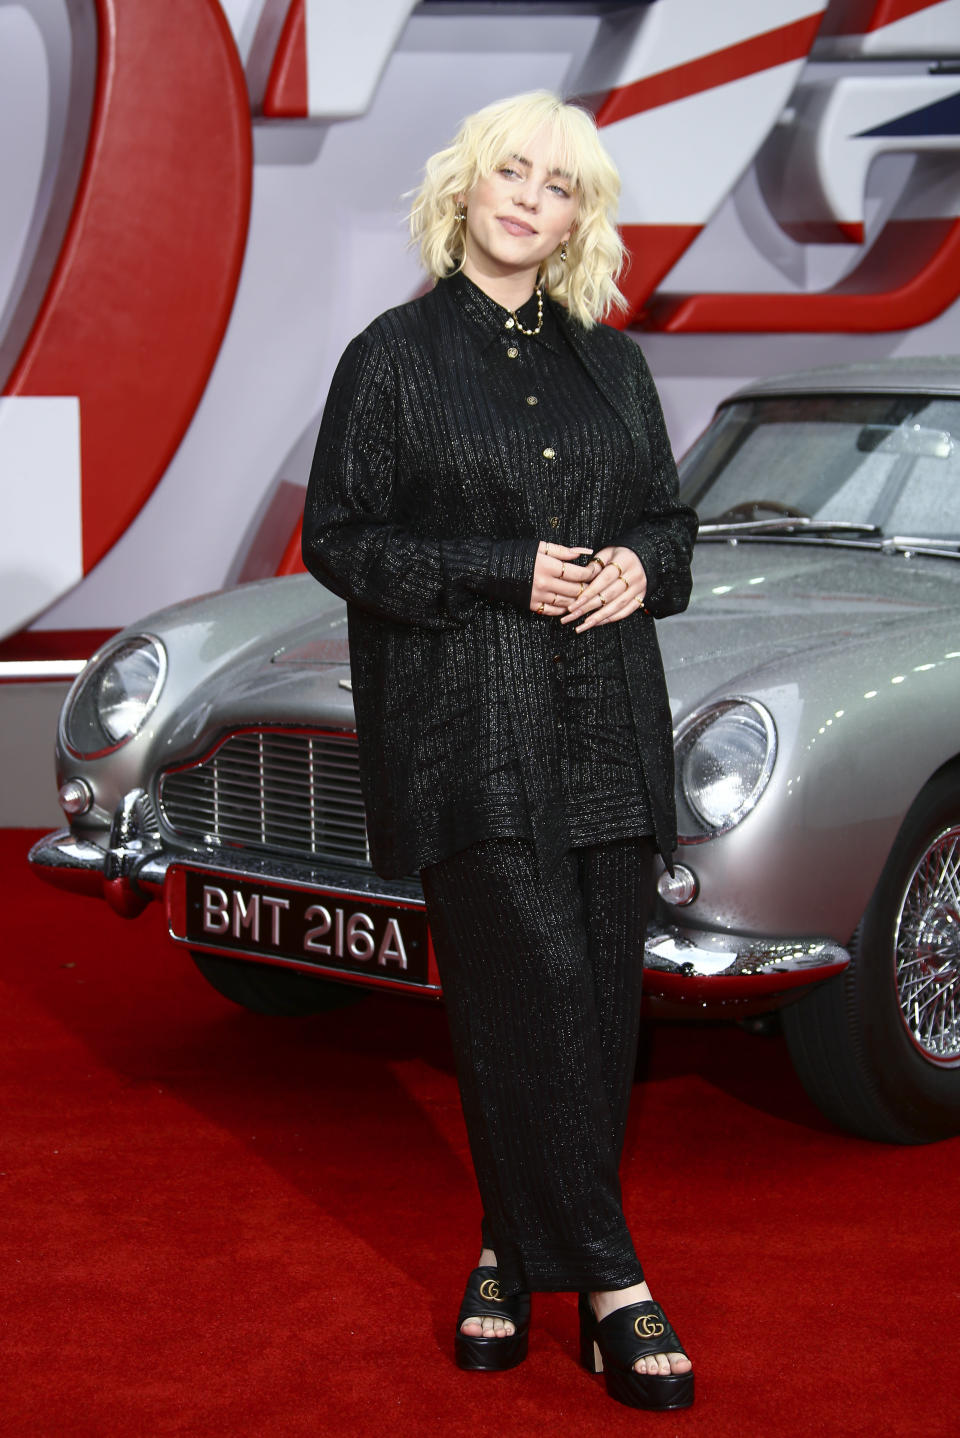 Billie Eilish poses for photographers upon arrival for the World premiere of the new film from the James Bond franchise 'No Time To Die', in London Tuesday, Sept. 28, 2021. (Photo by Joel C Ryan/Invision/AP)